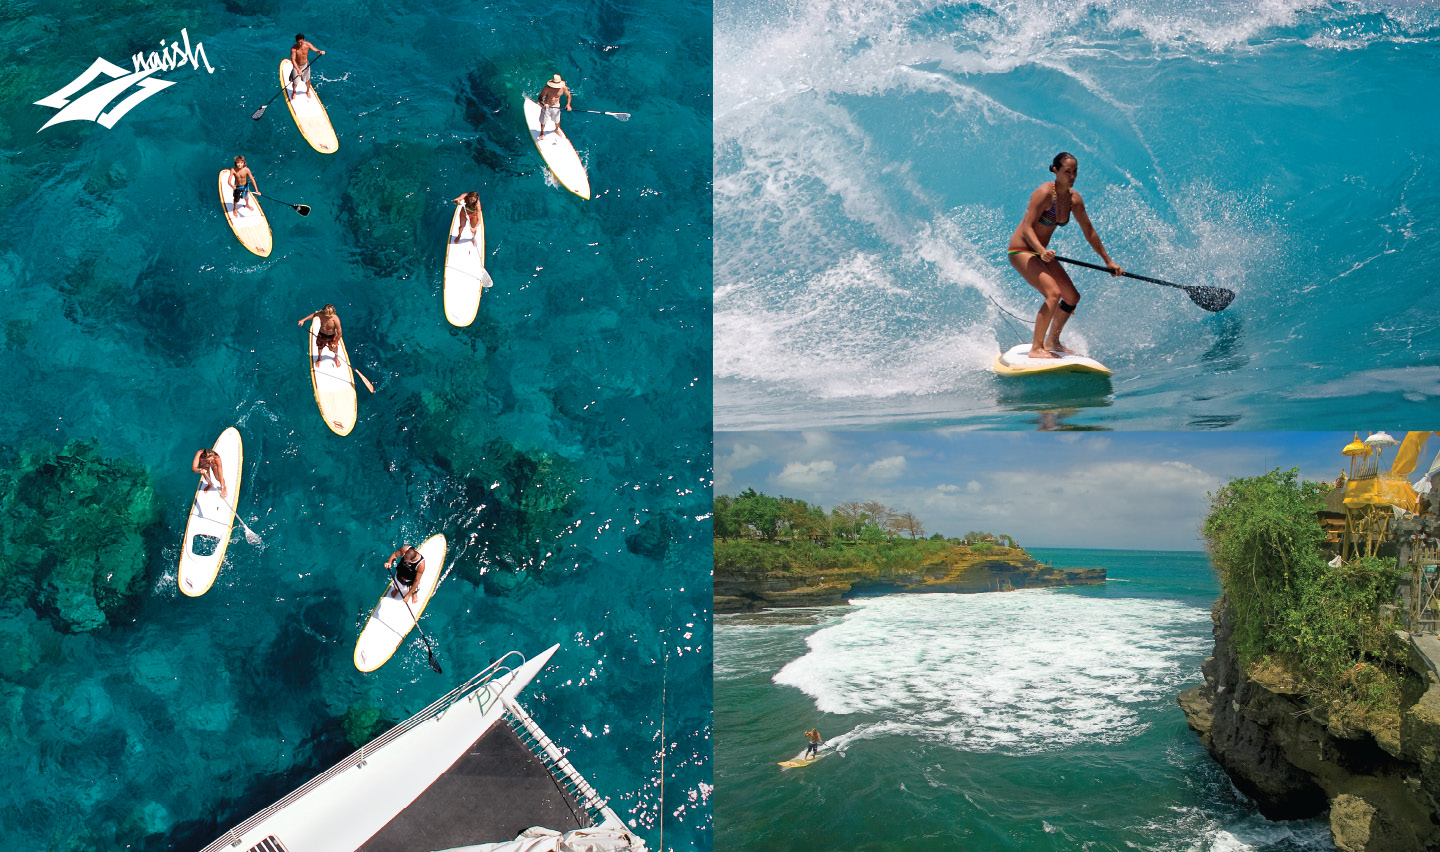 sup surfing wallpaper - photo #19